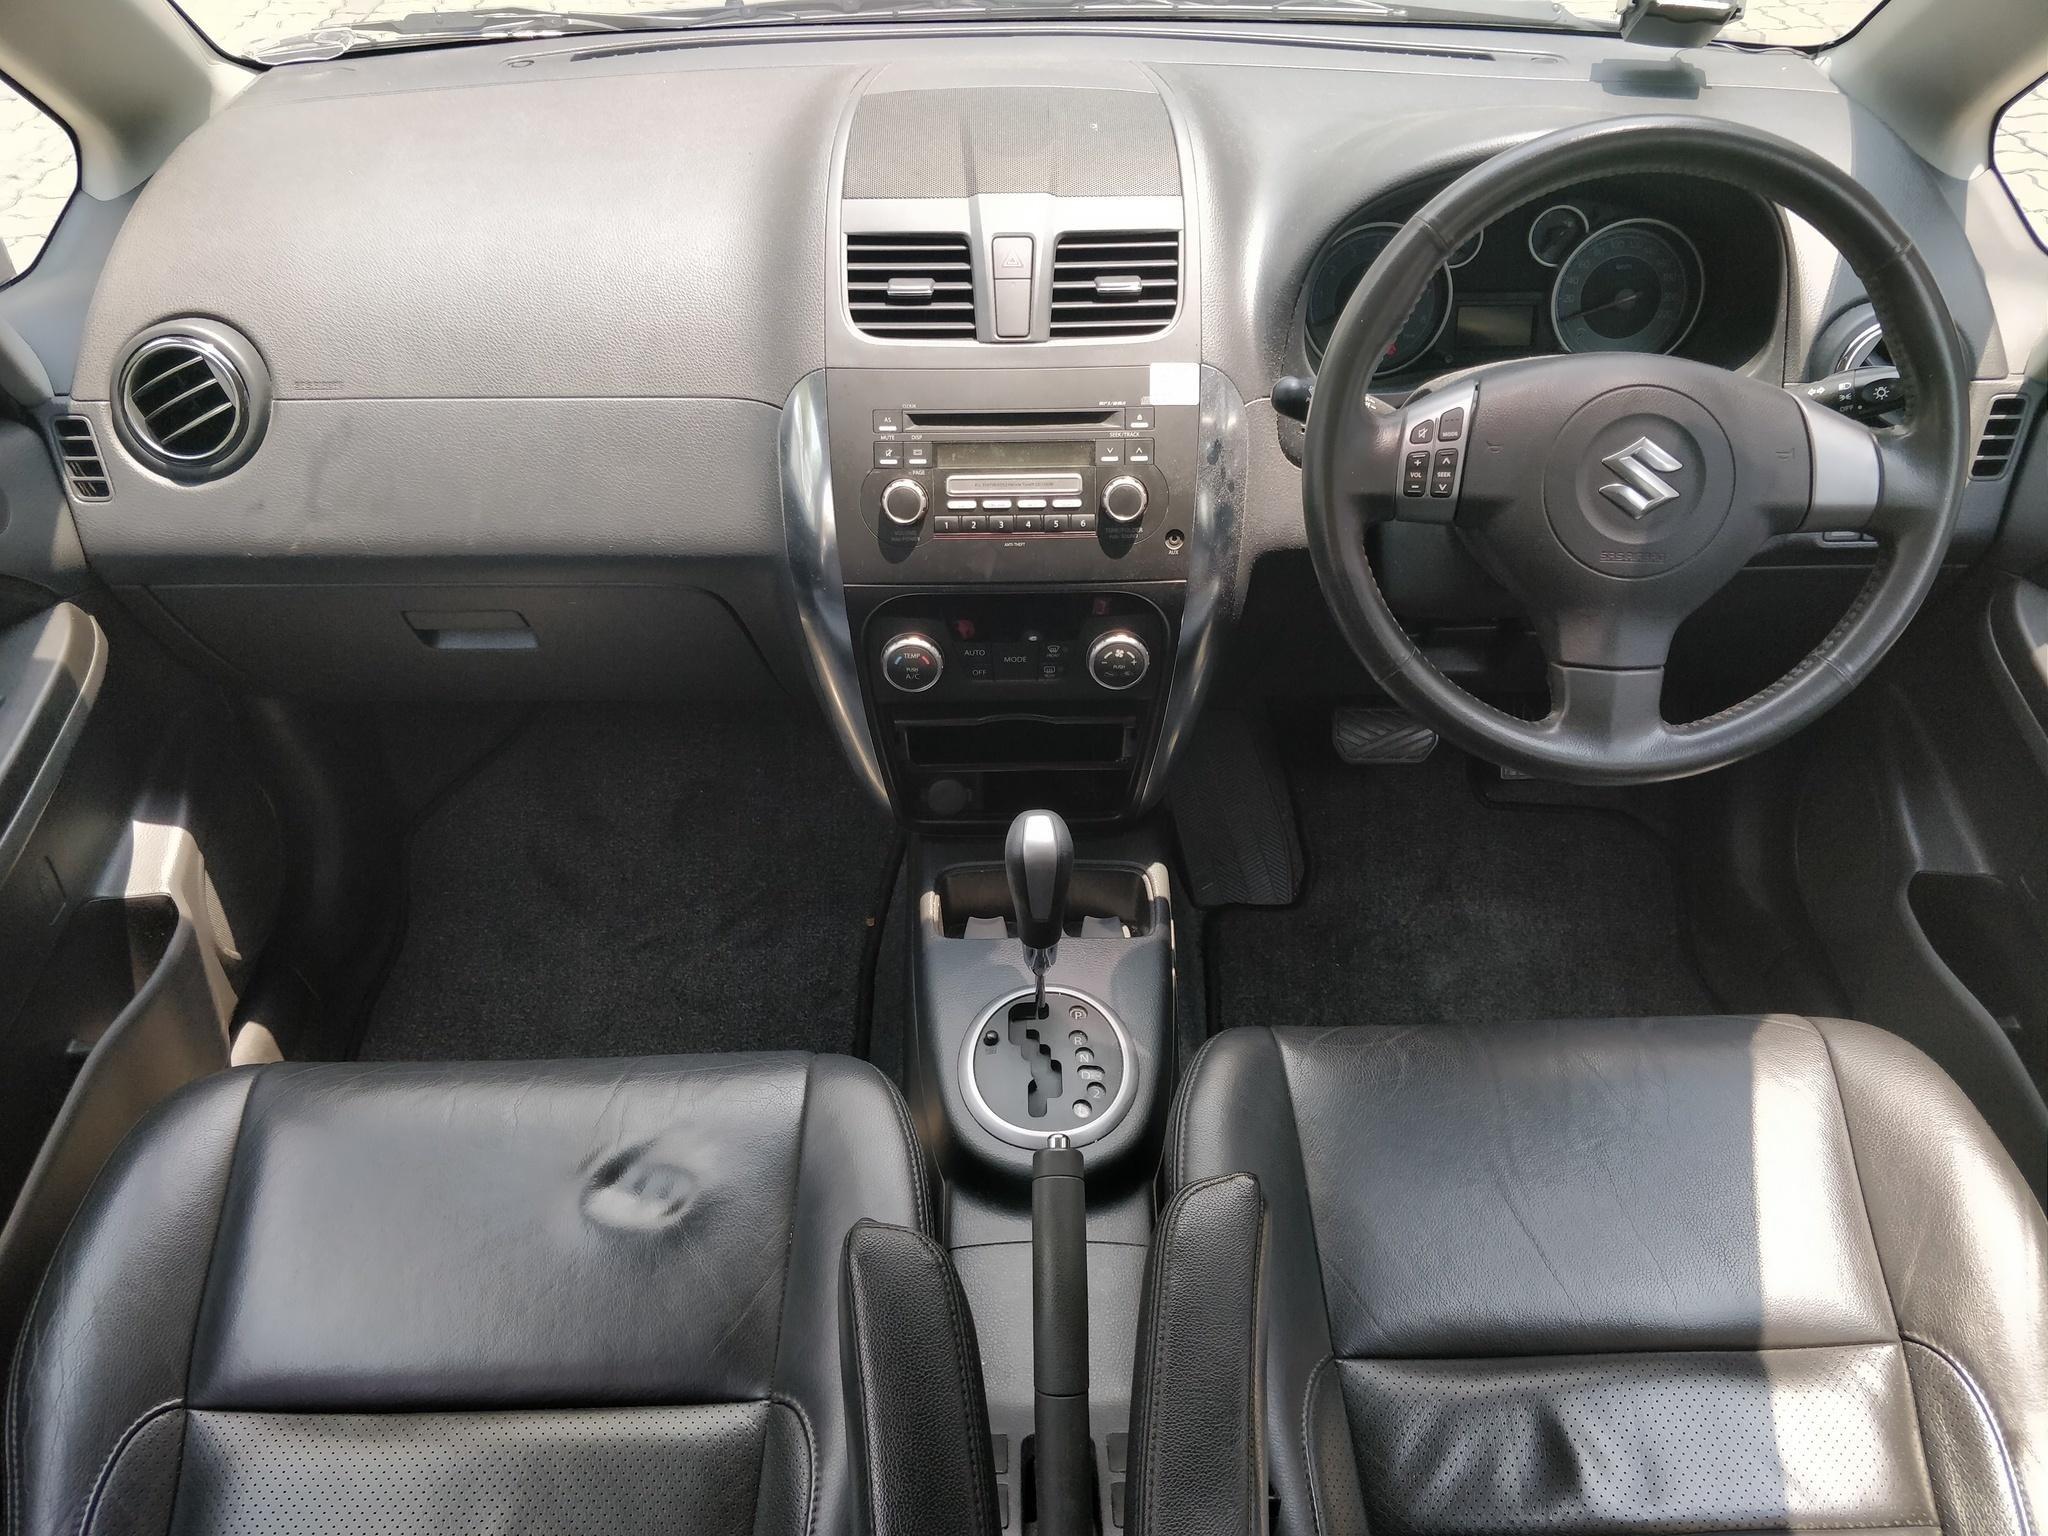 Suzuki SX4 - Many ranges of car to choose from, good condition!